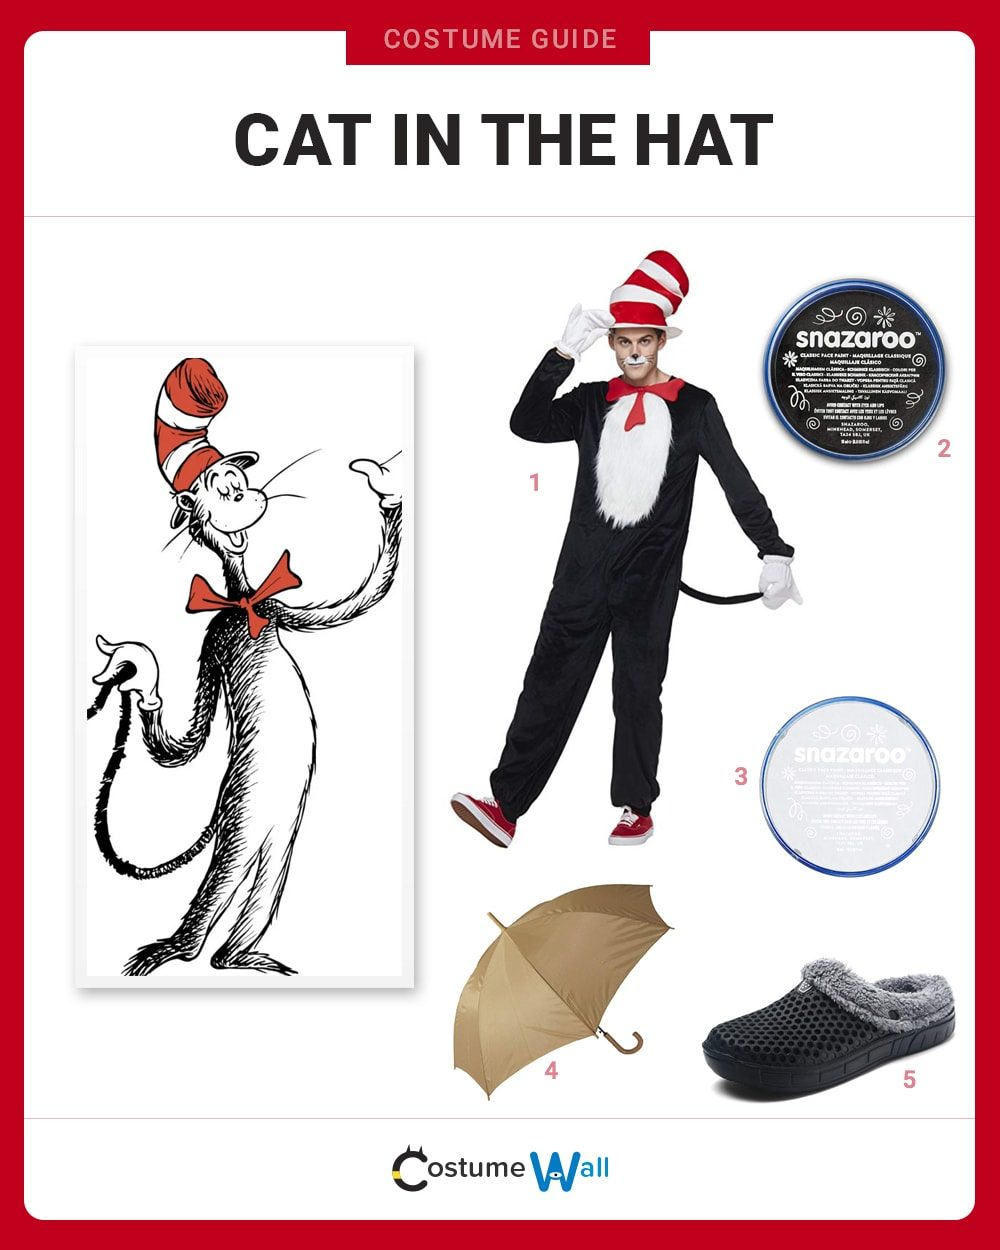 Cat in the Hat Costume Guide